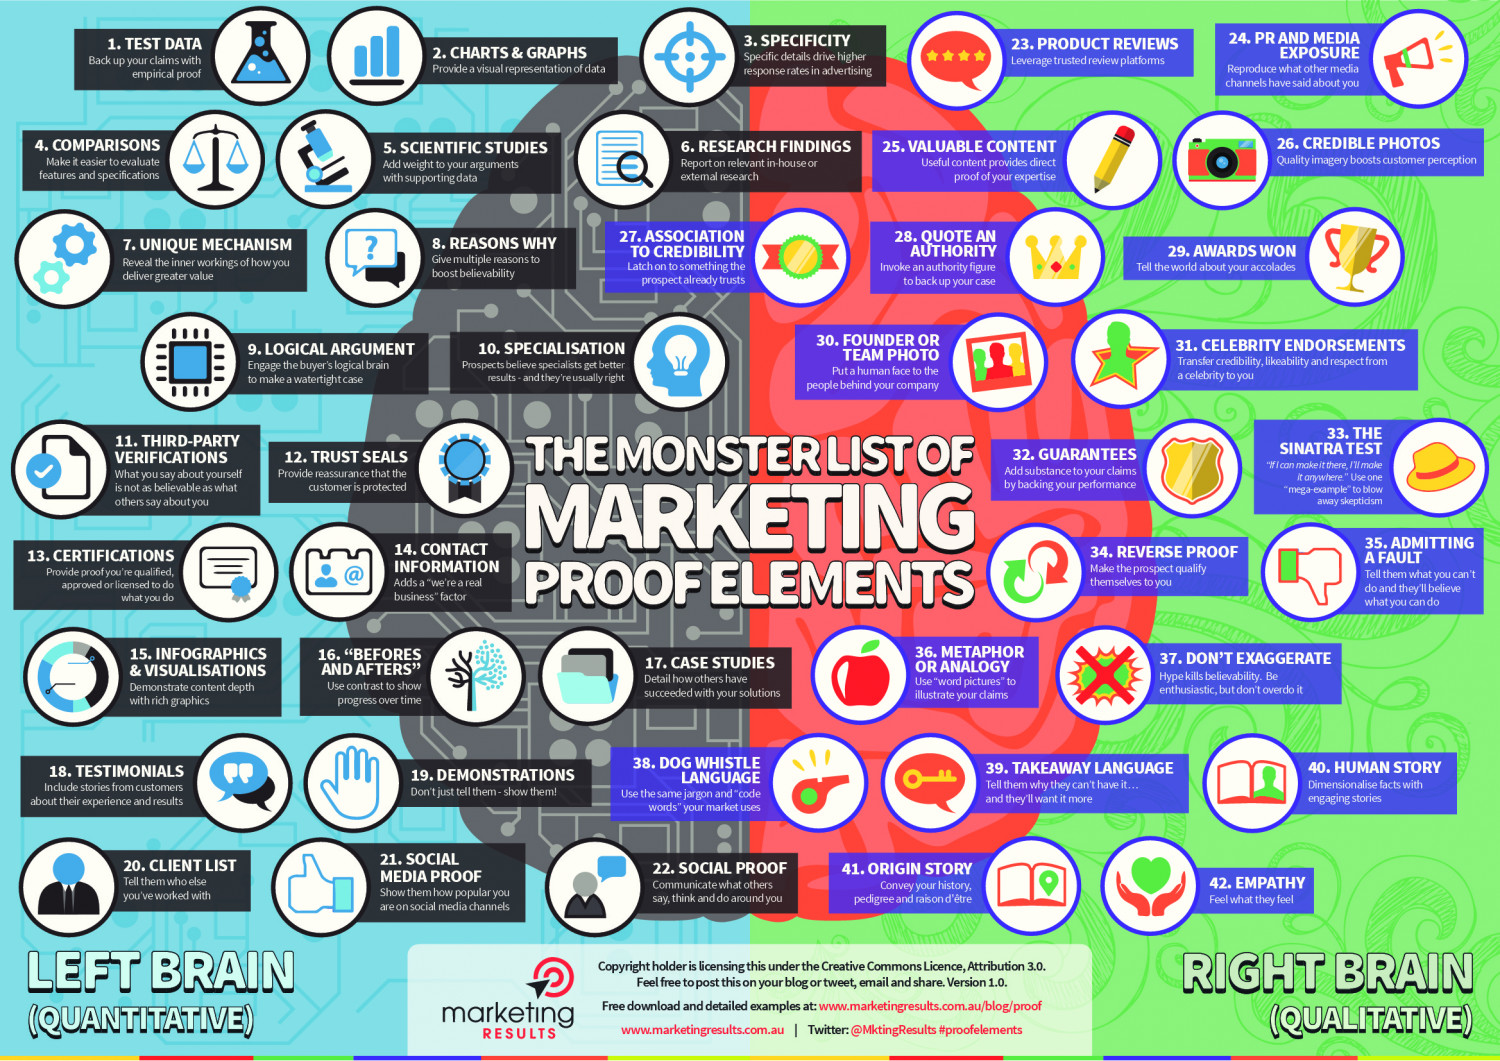 The Monster List of Marketing PROOF ELEMENTS Infographic